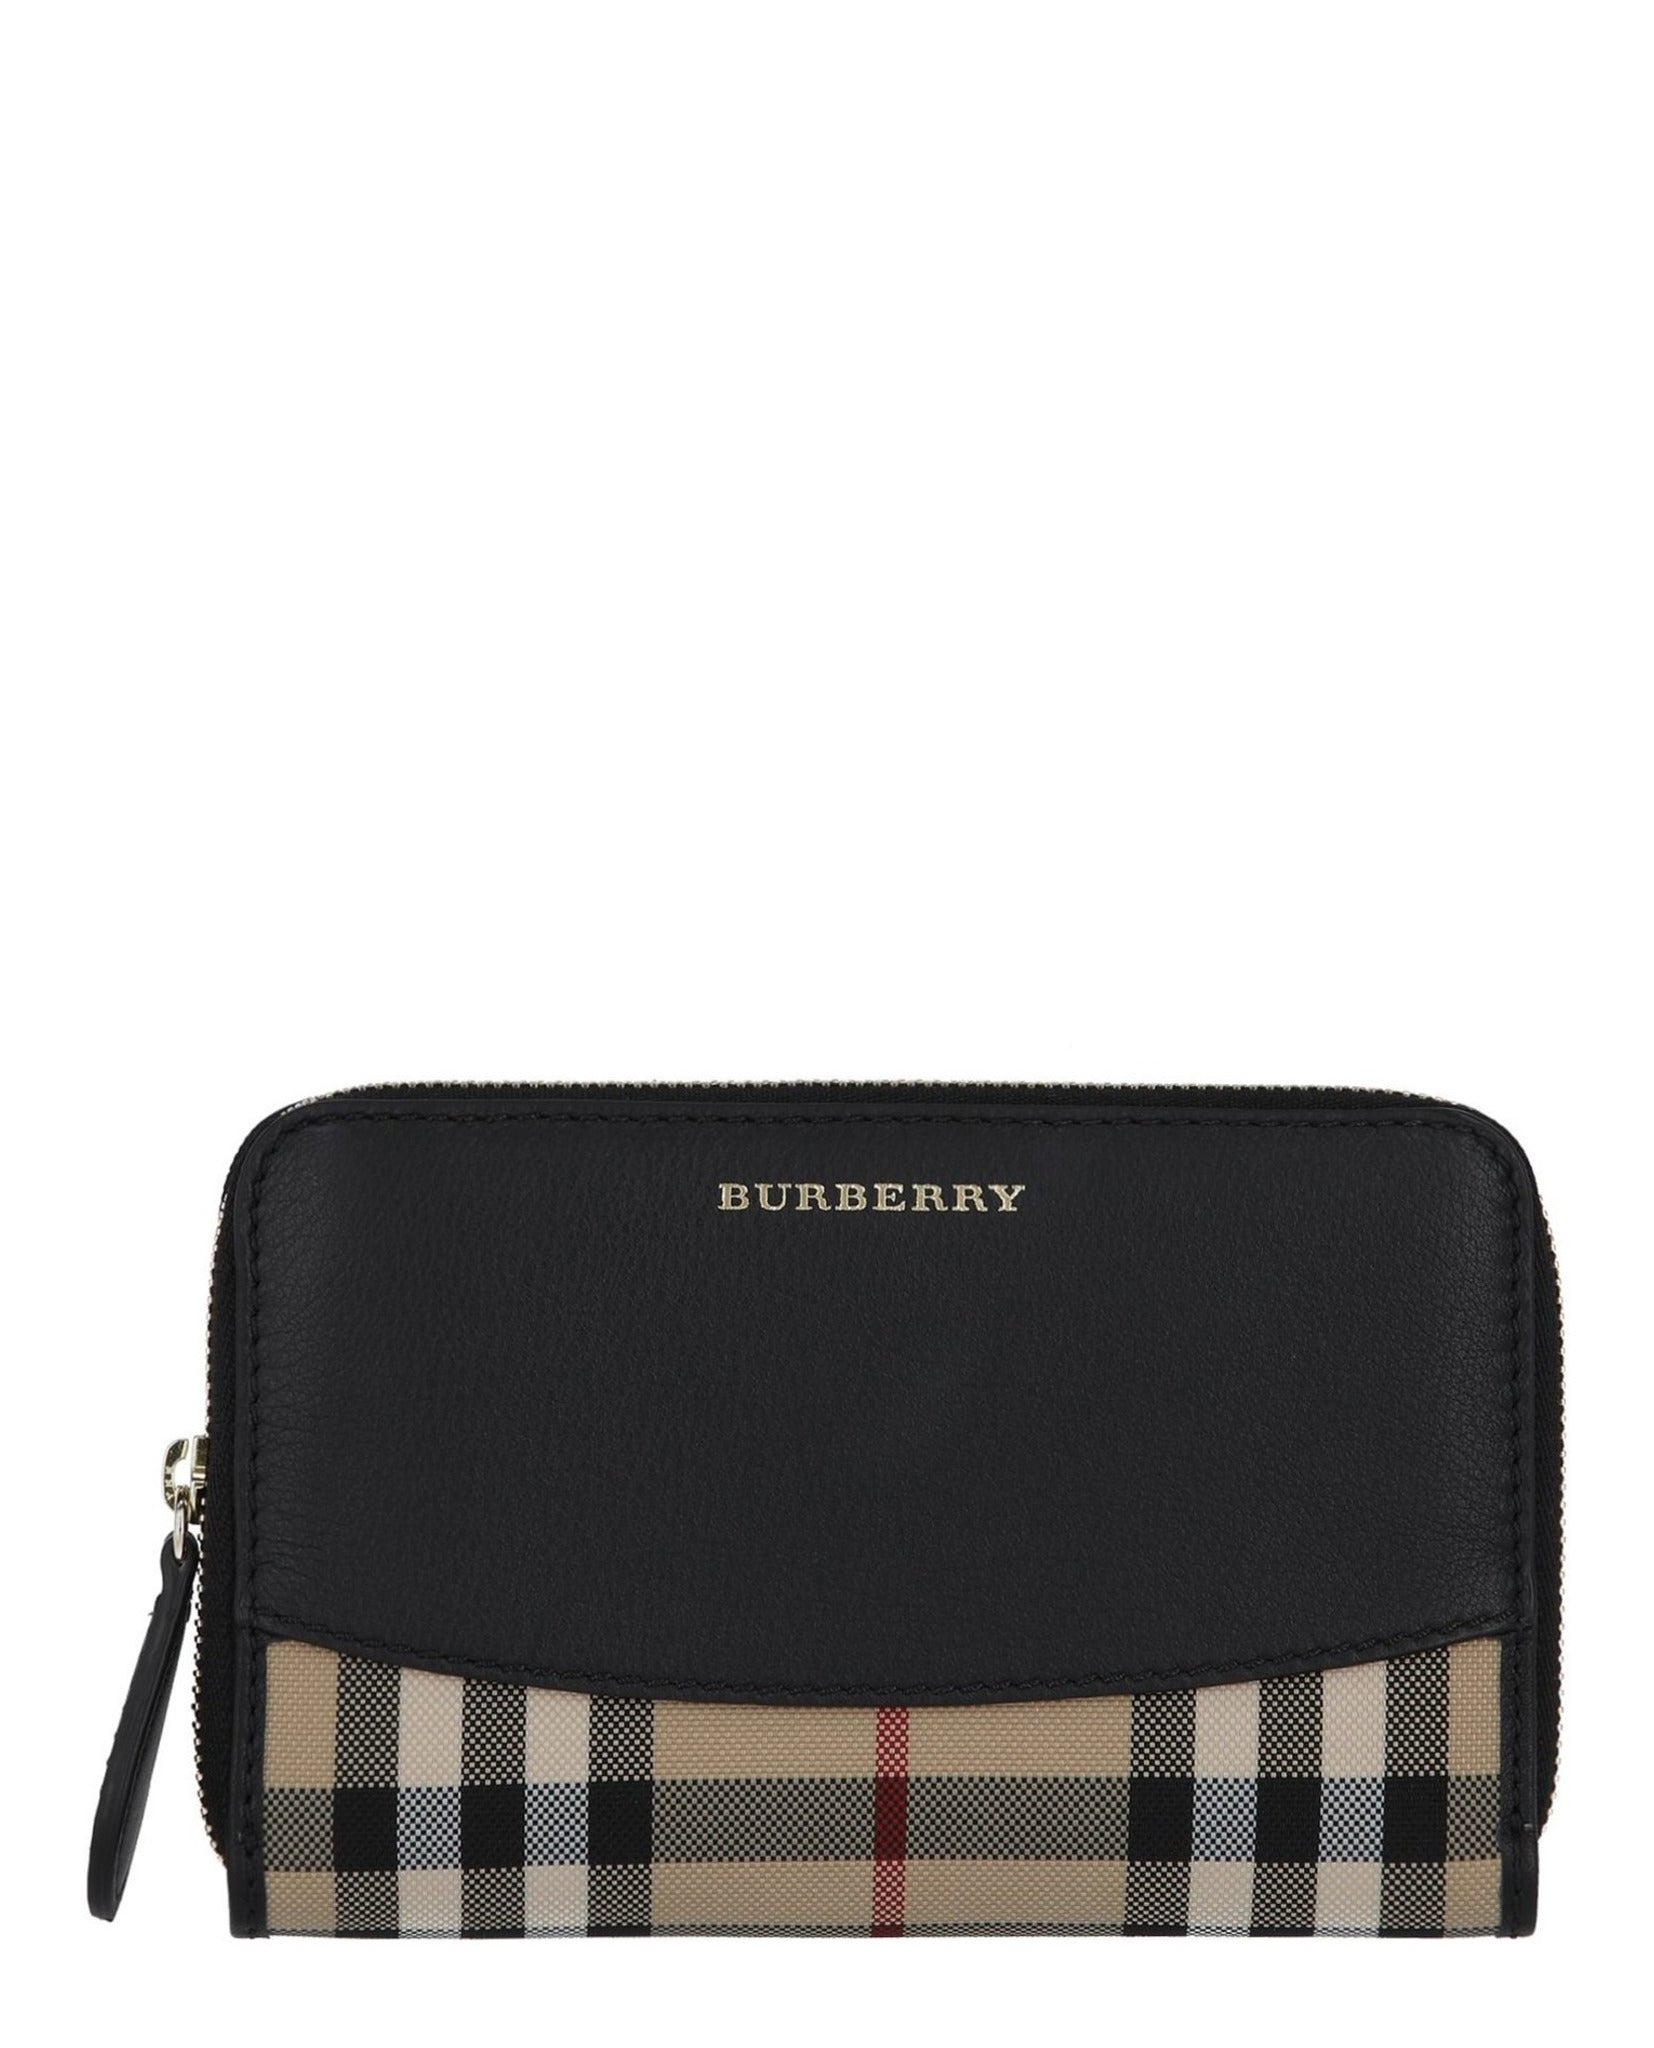 Burberry Horseferry Check and Leather Zip Around Wallet